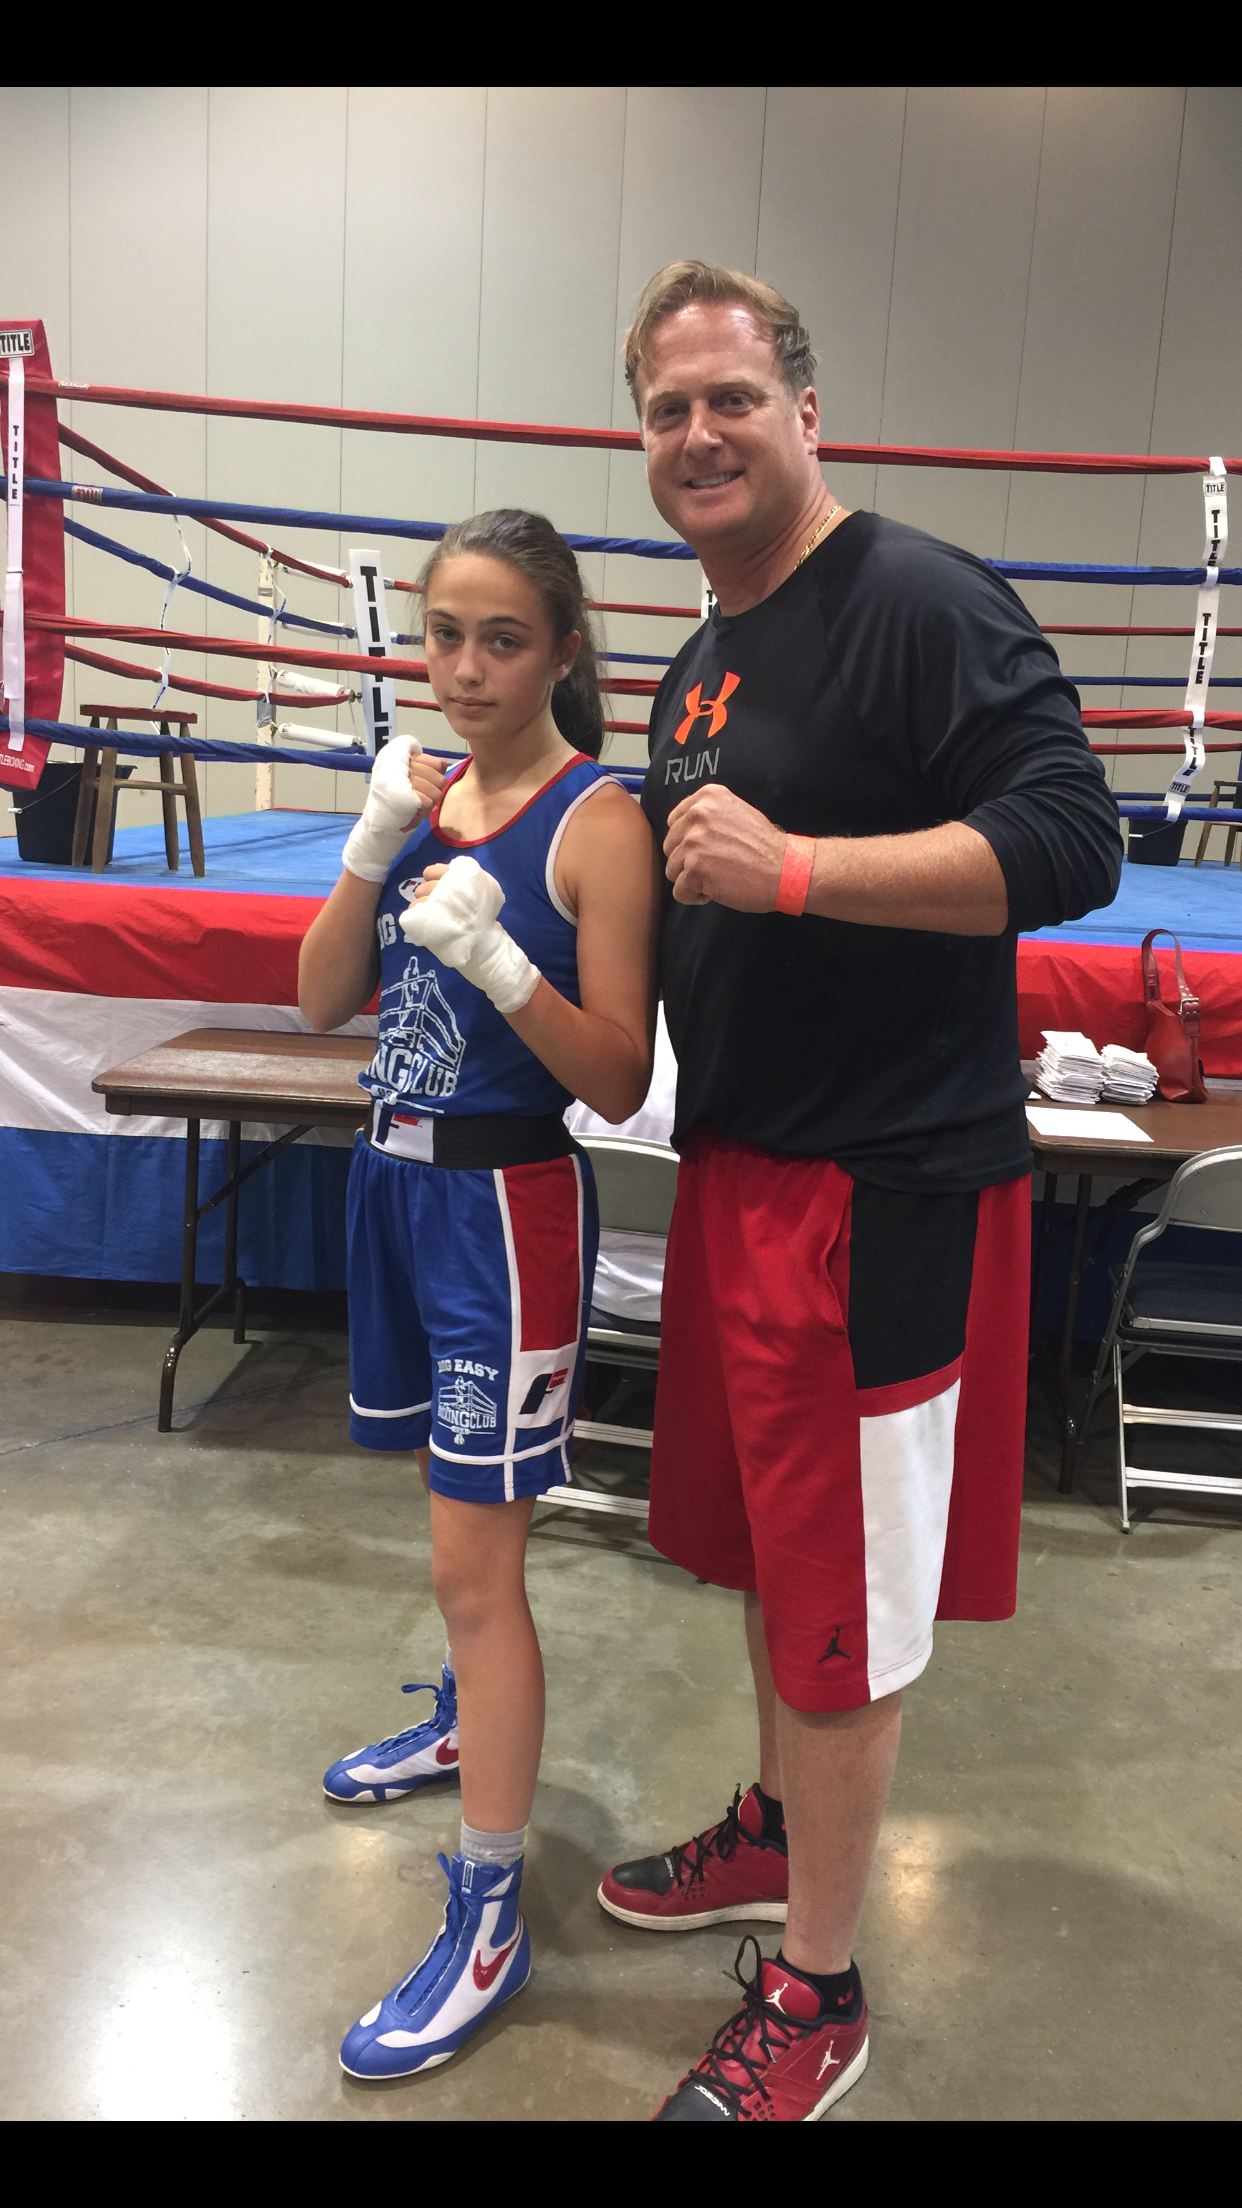 World Champion USA Boxer Alexis Lavarine and Coach David Lavarine